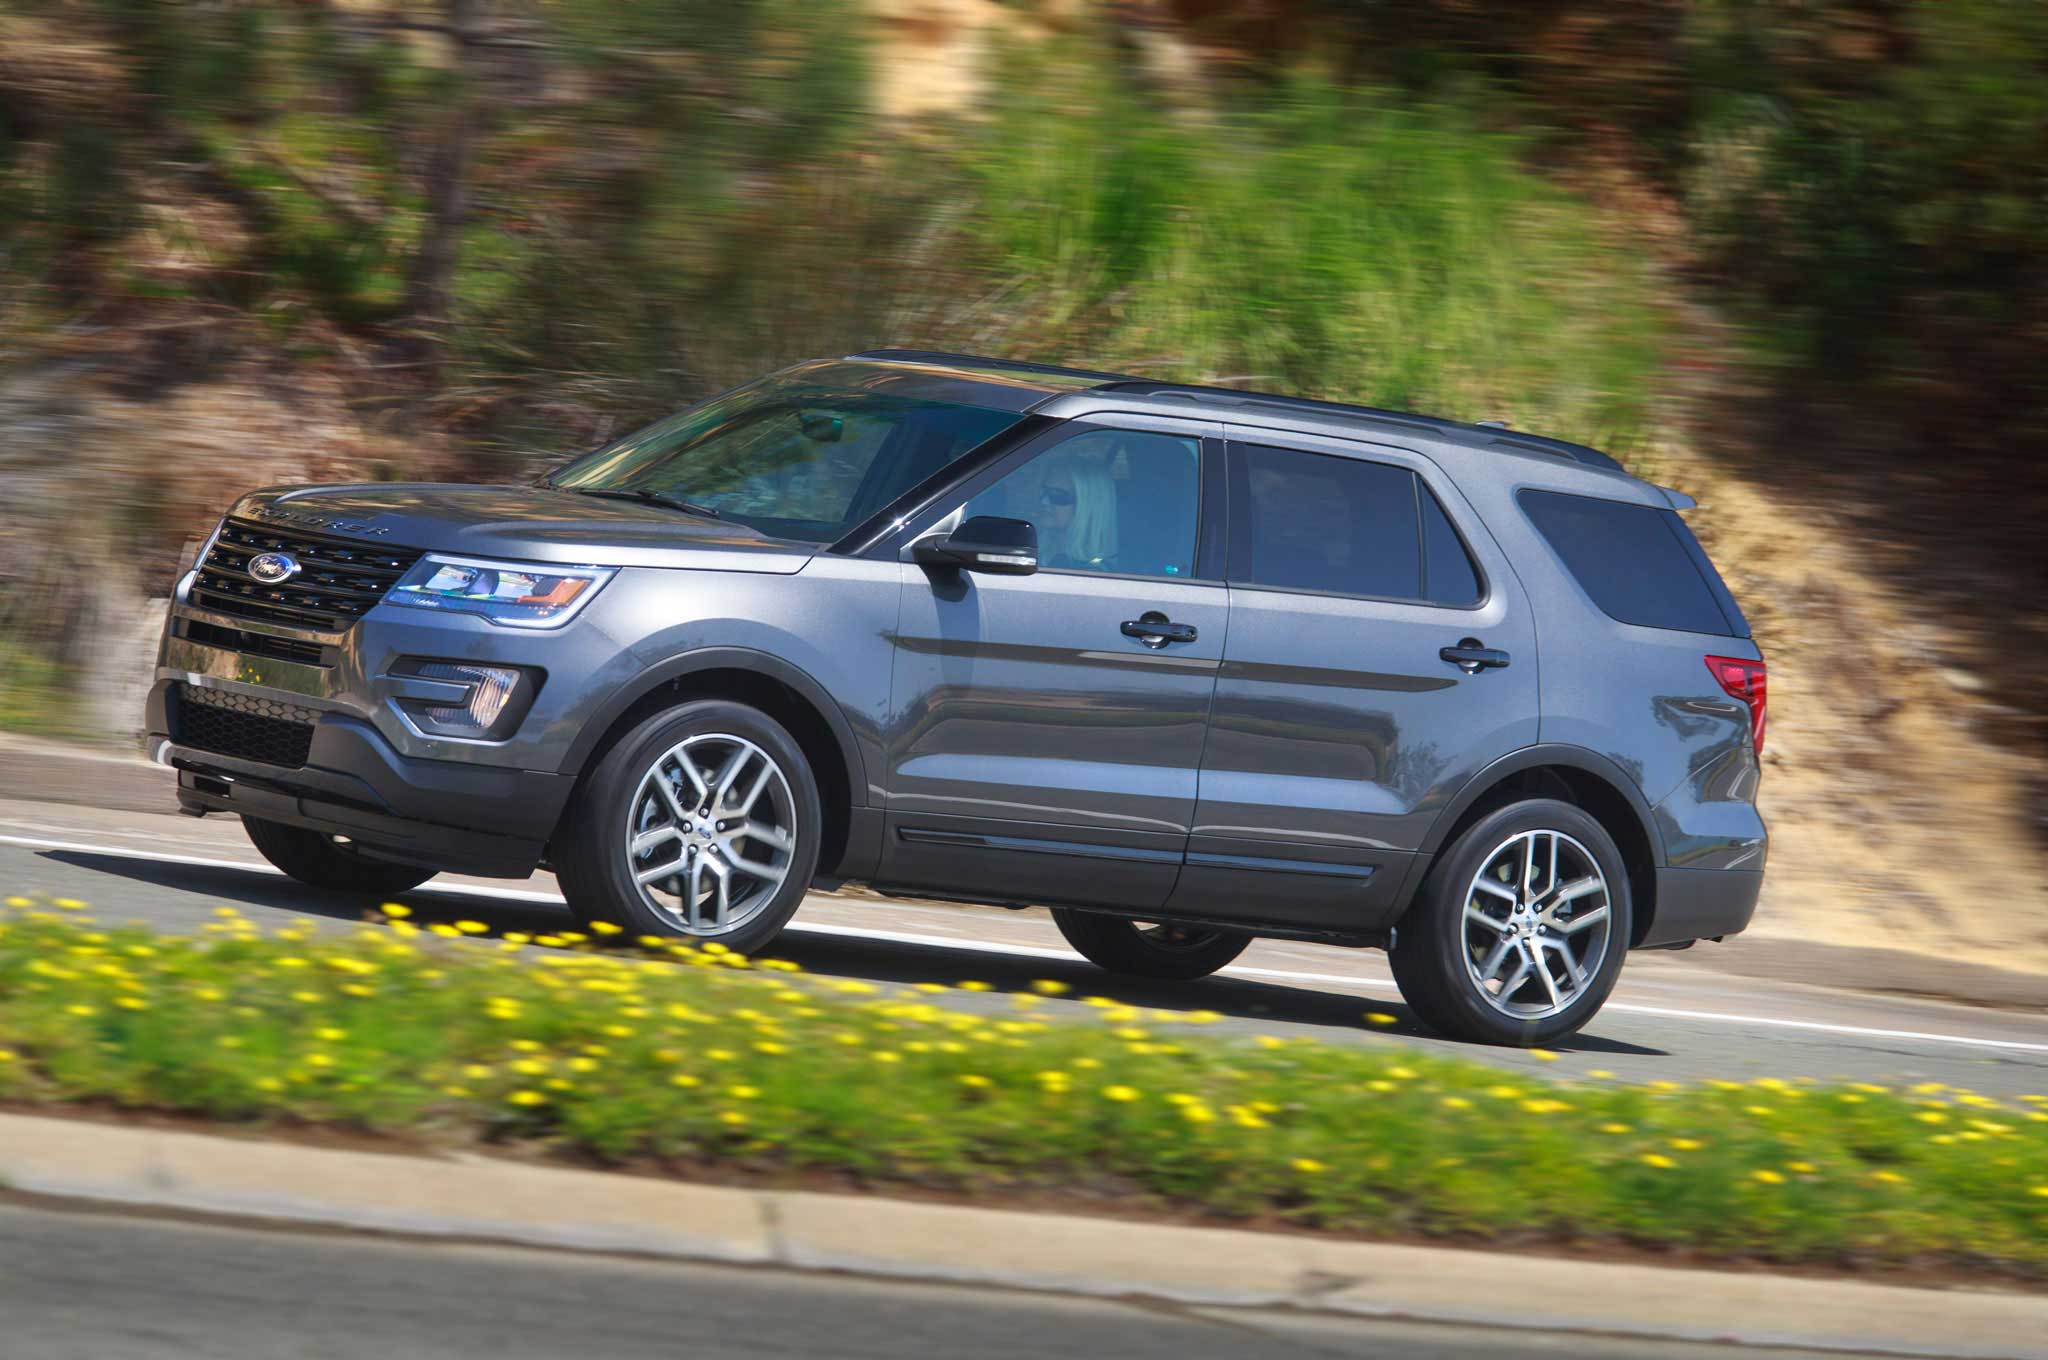 2016 Ford Explorer Driver Side View